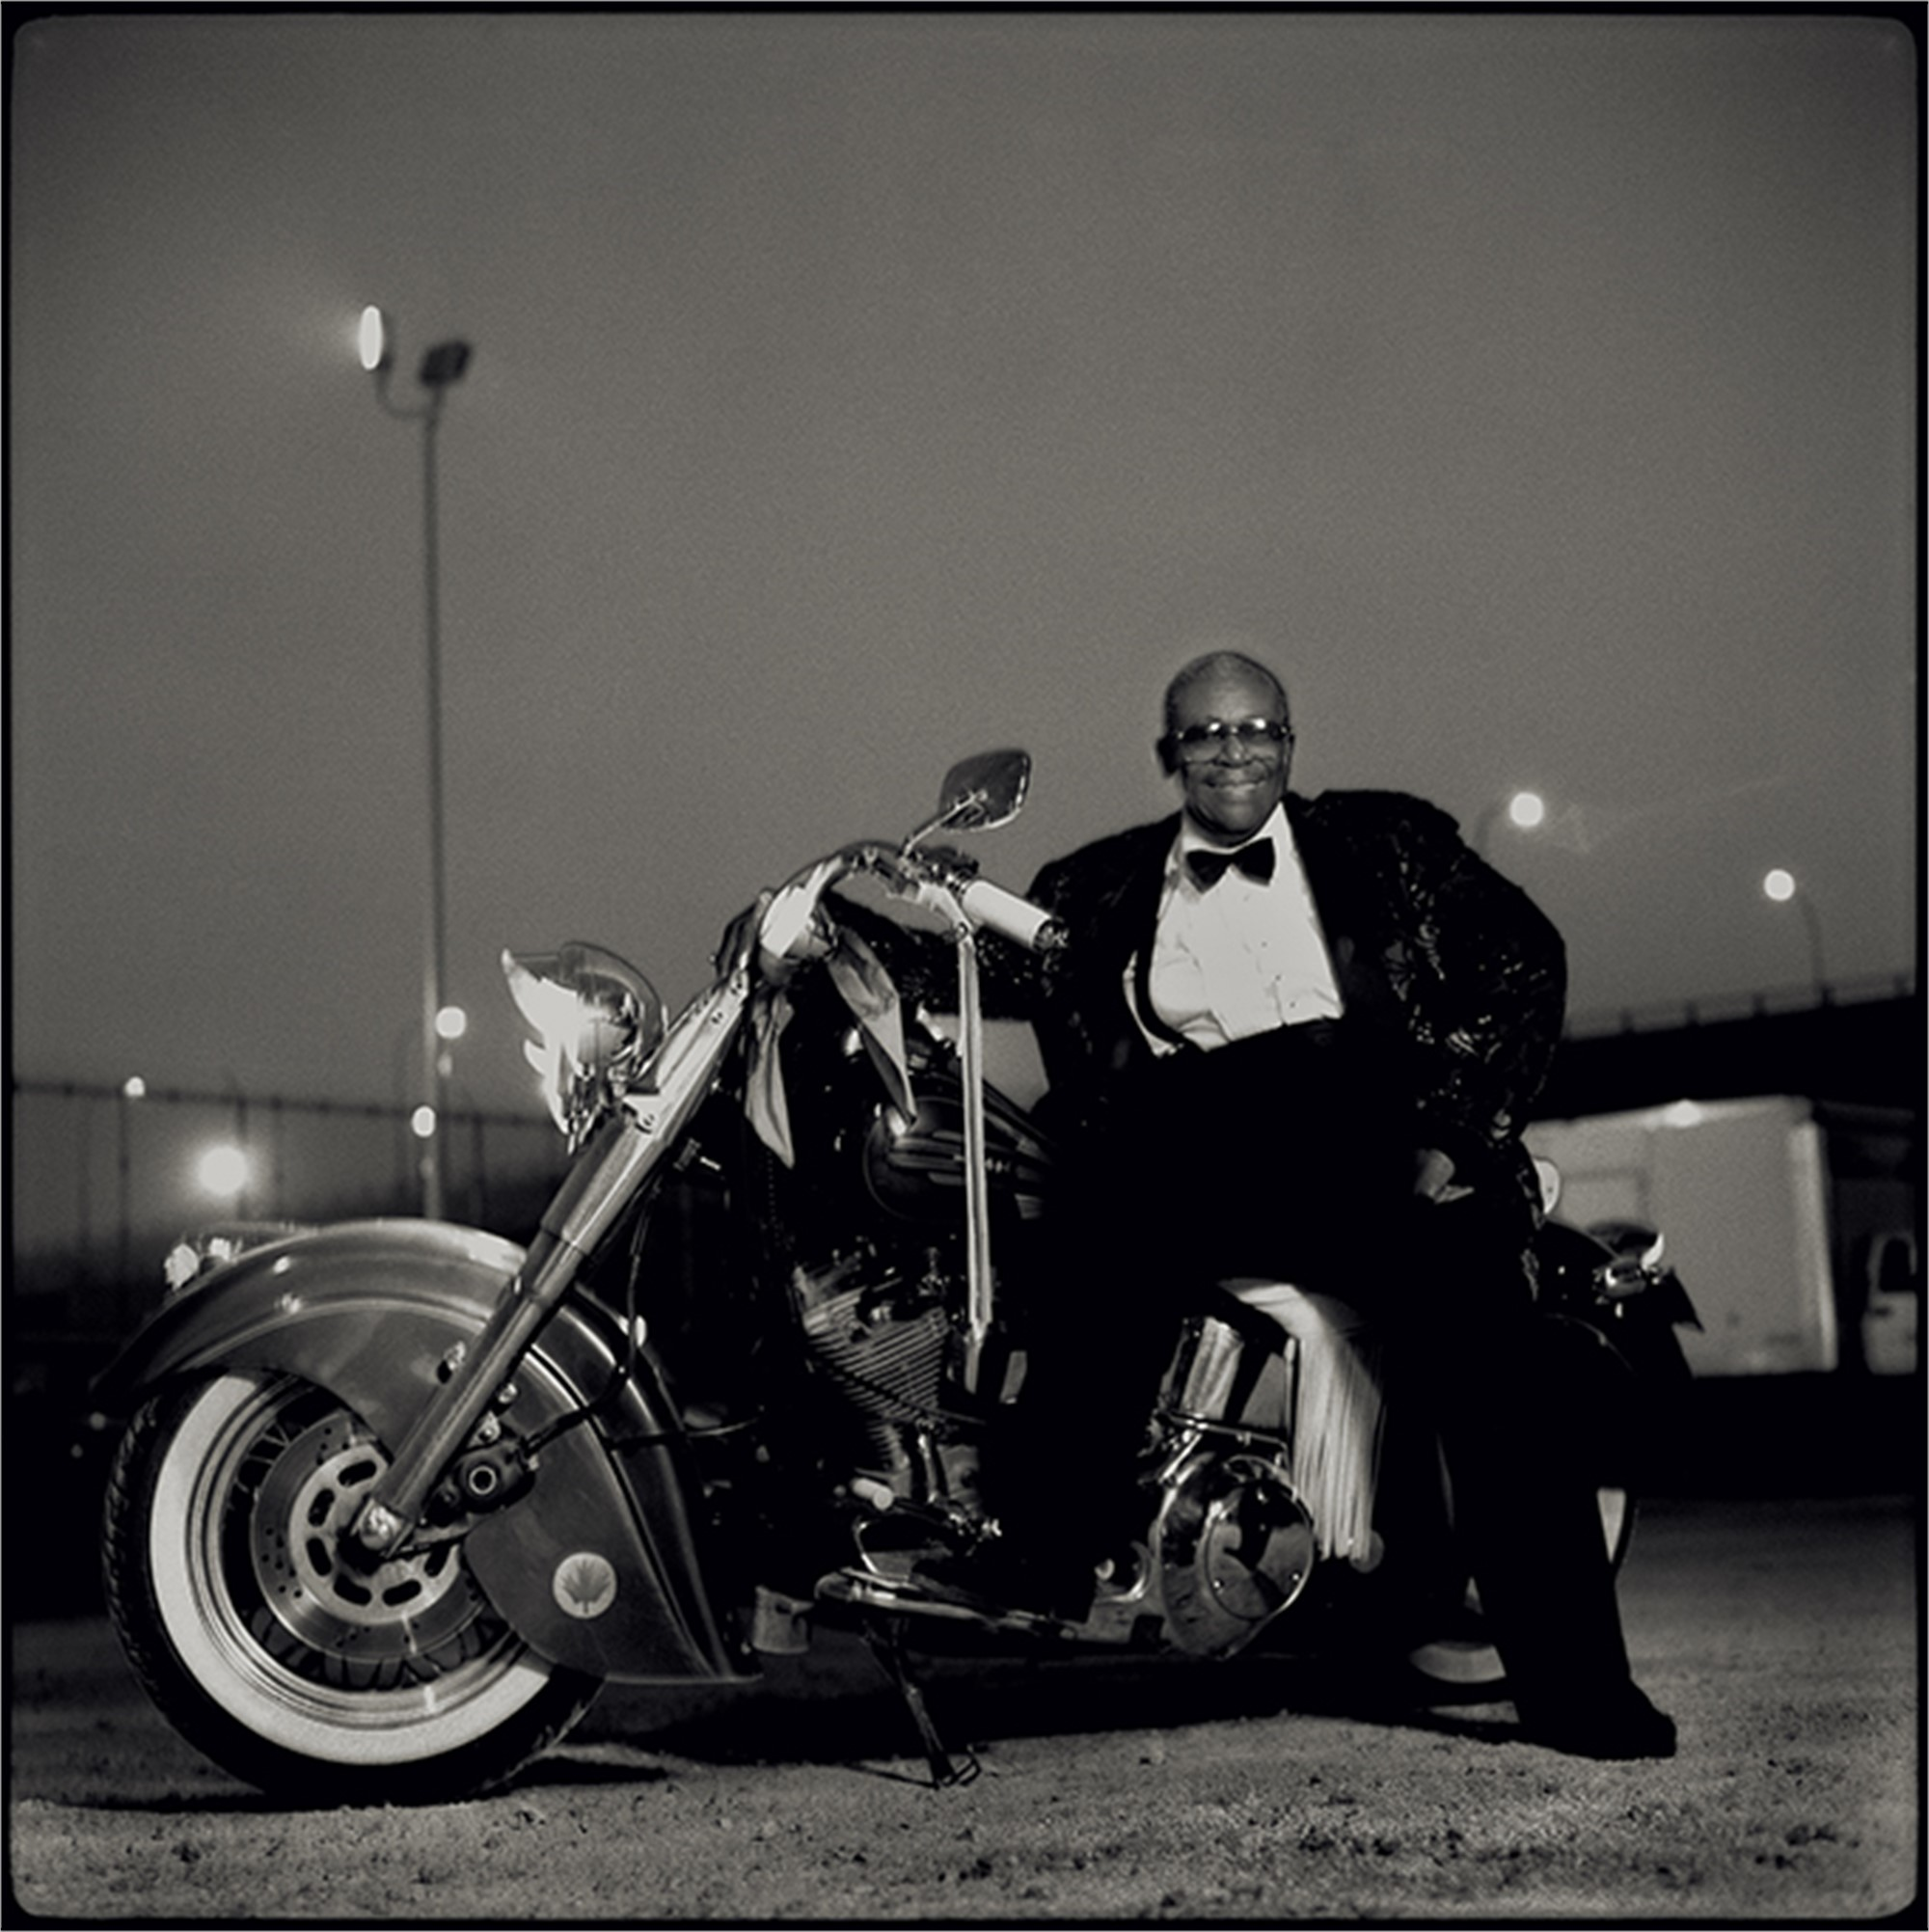 97055 B.B. King on Motorcycle BW by Timothy White